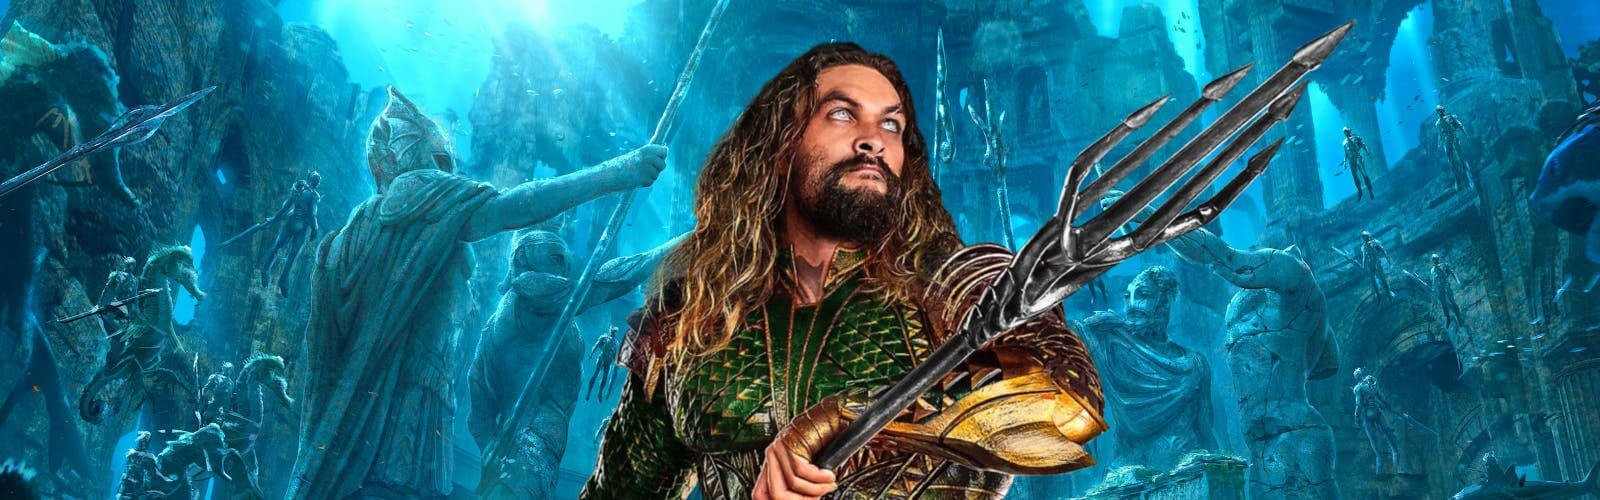 DC's Aquaman trailer is here and it goes all out!